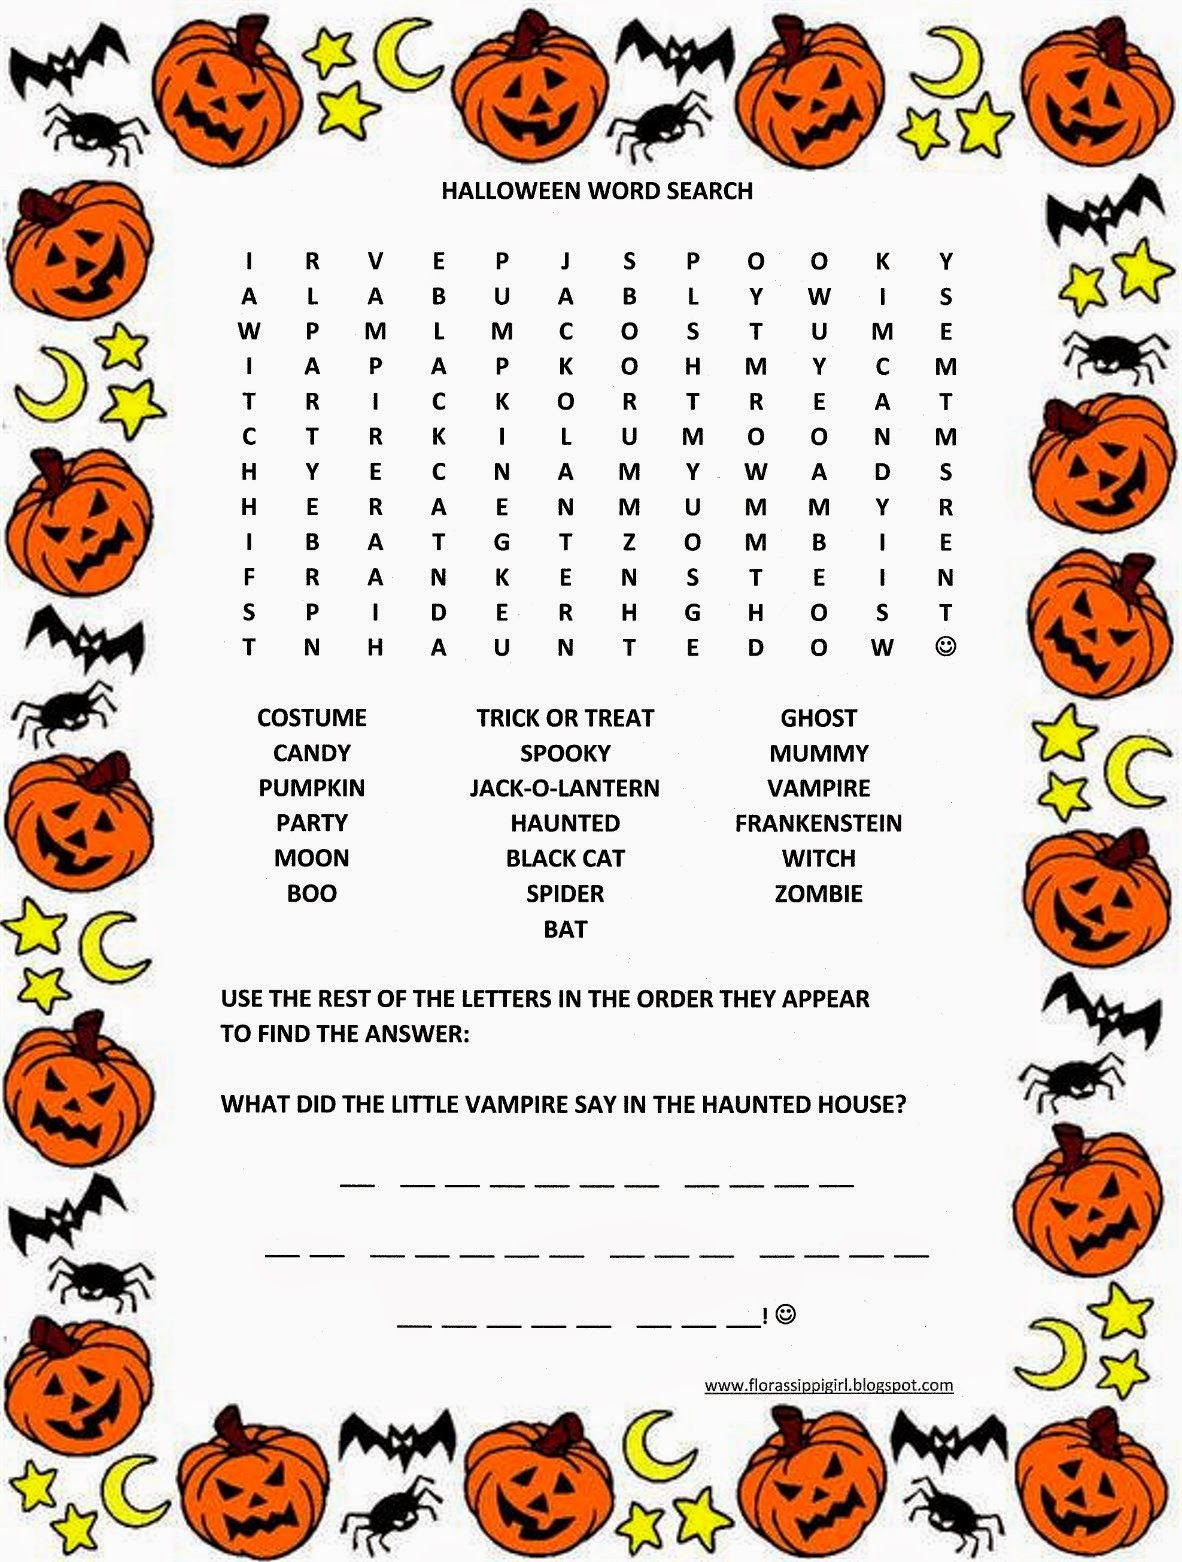 Florassippi Girl Halloween Word Search